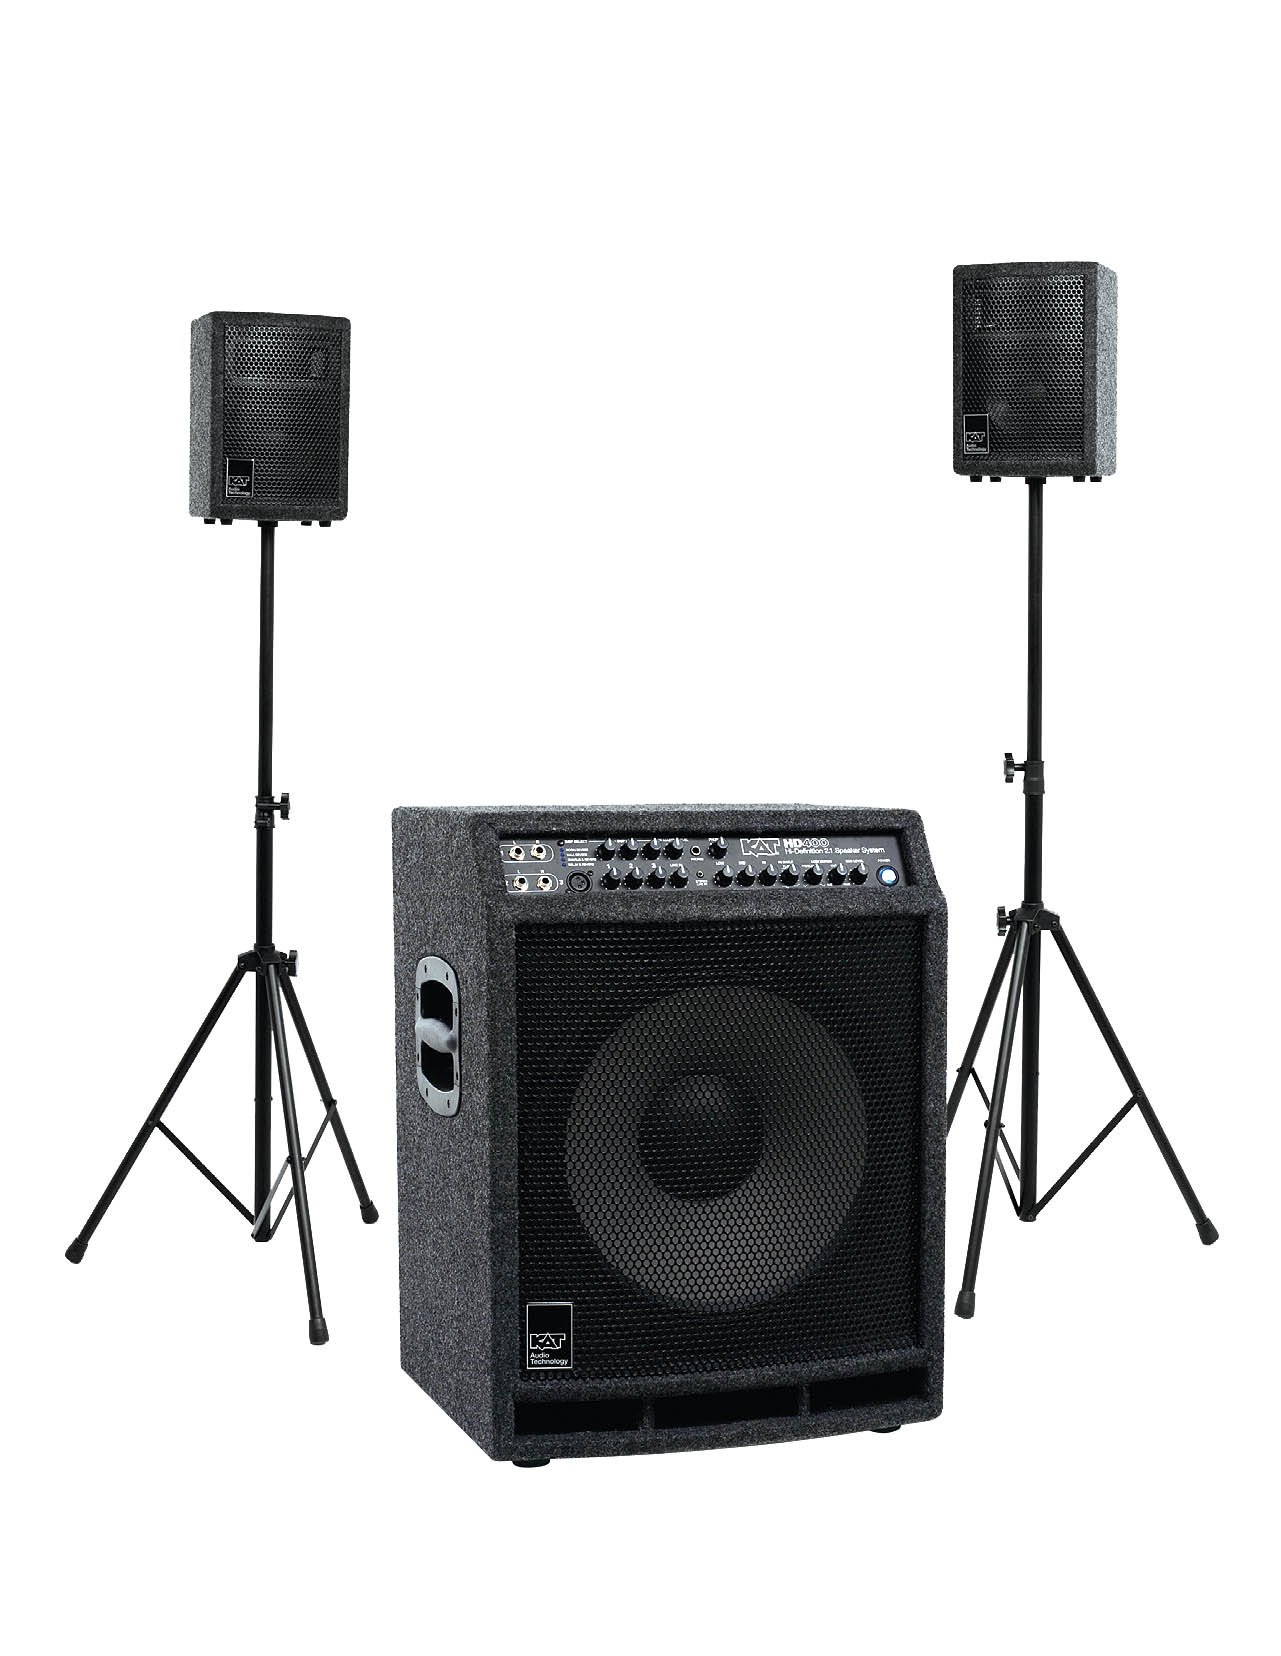 KAT Percussion 400 Watt 2.1 Stereo Drum Sound System by KAT Percussion (Image #1)